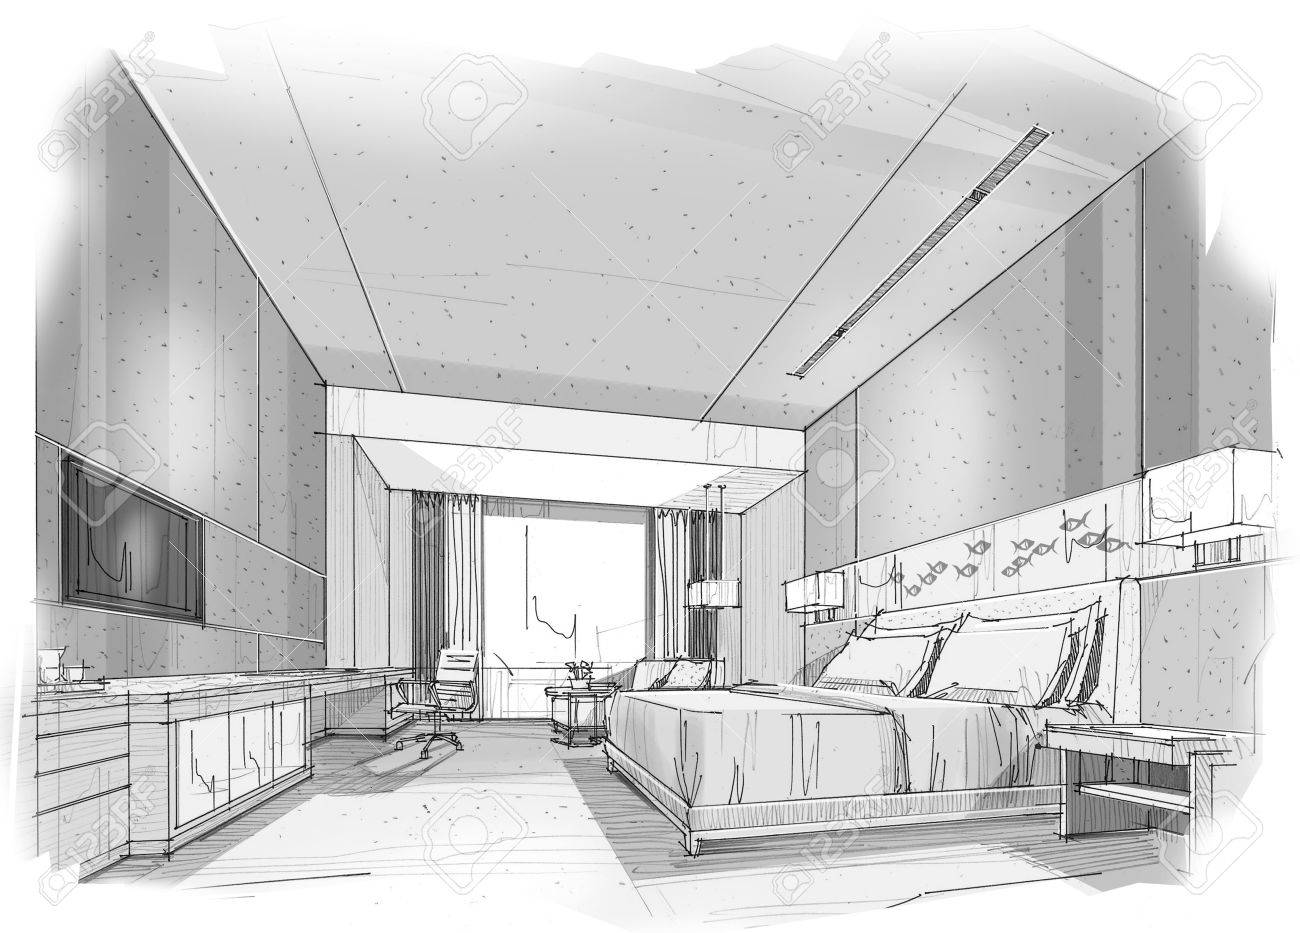 Dessin Chambre Perspective - Amazing Home Ideas - freetattoosdesign.us